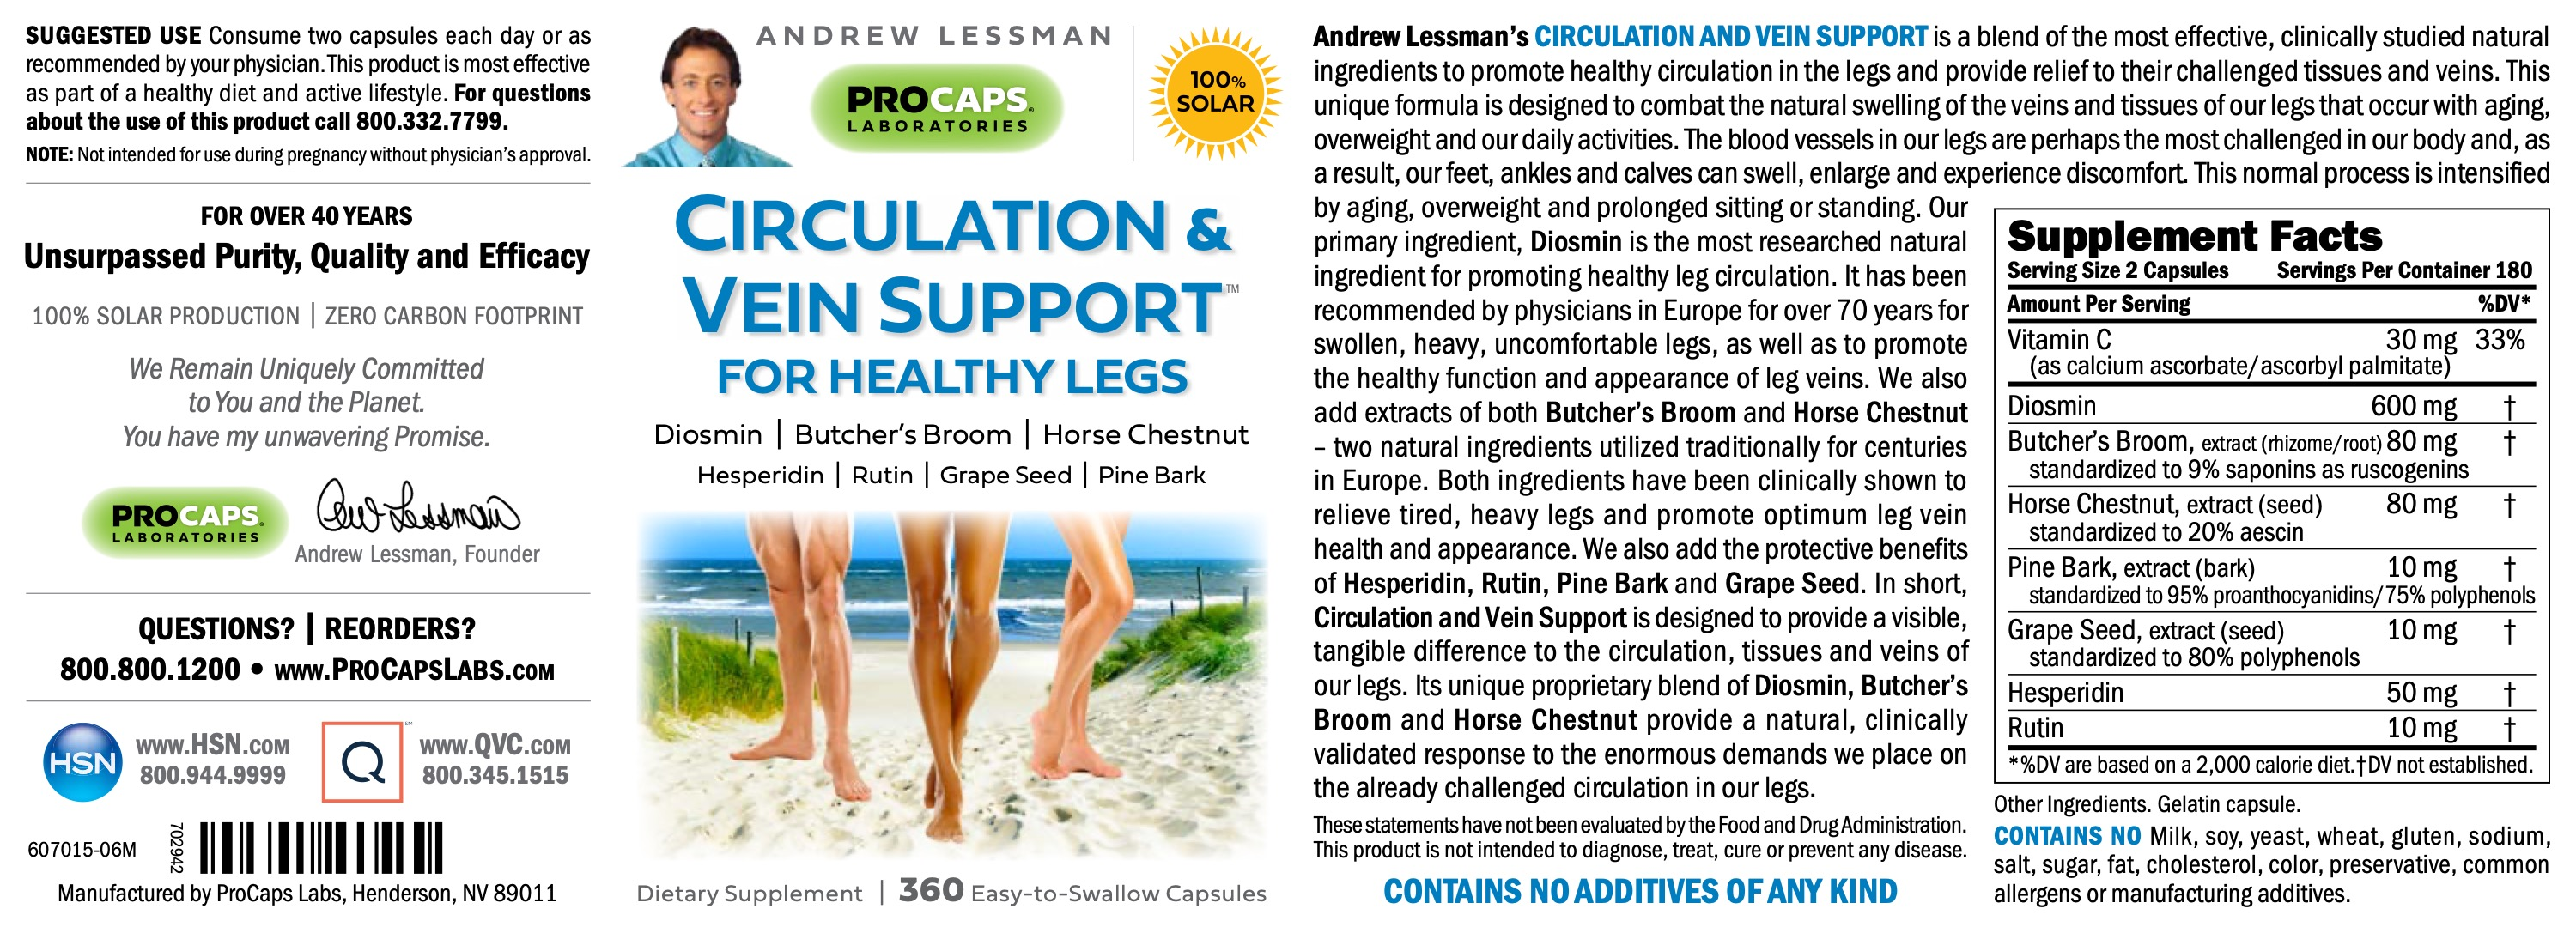 Circulation-And-Vein-Support-for-Healthy-Legs-Capsules-Circulatory-Health